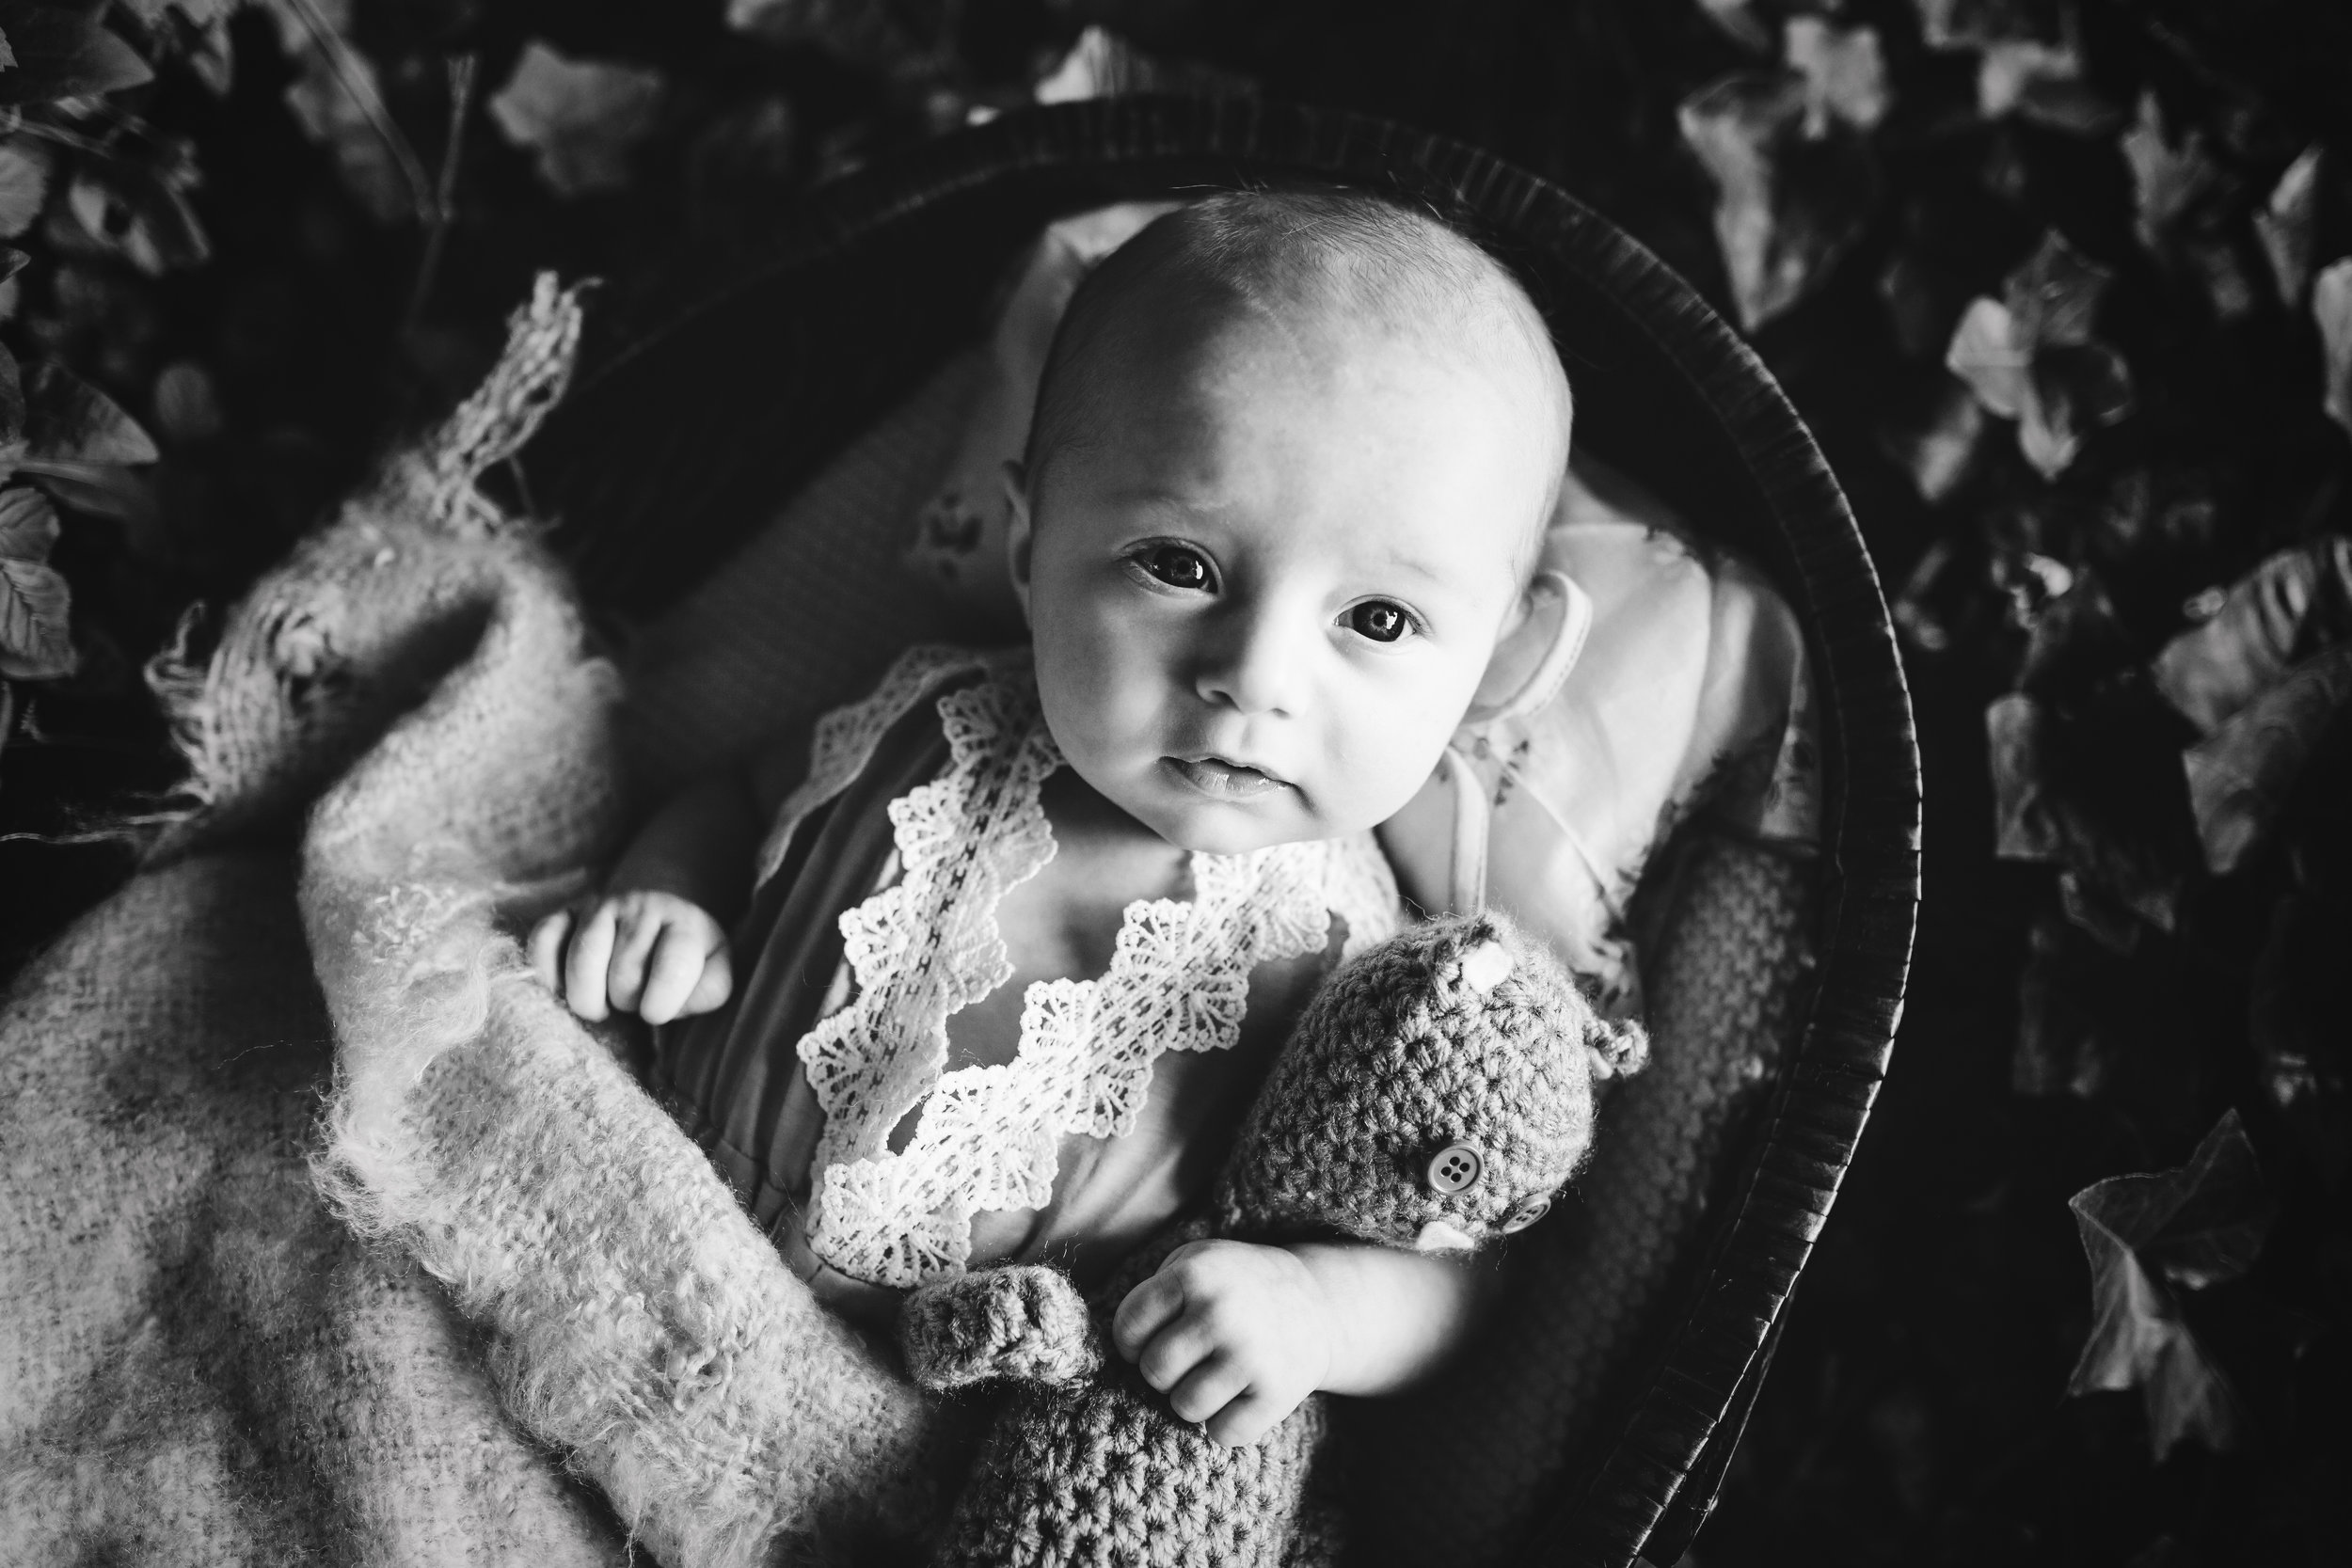 Three (3) month old baby in a yellow romper lined with white lace in a basket with a soft yellow blanket while holding a brown teddy in a basket with a lace lined pillow in a bed of Ivy in sun set lighting this black and white portrait by Nature's Reward Photography.